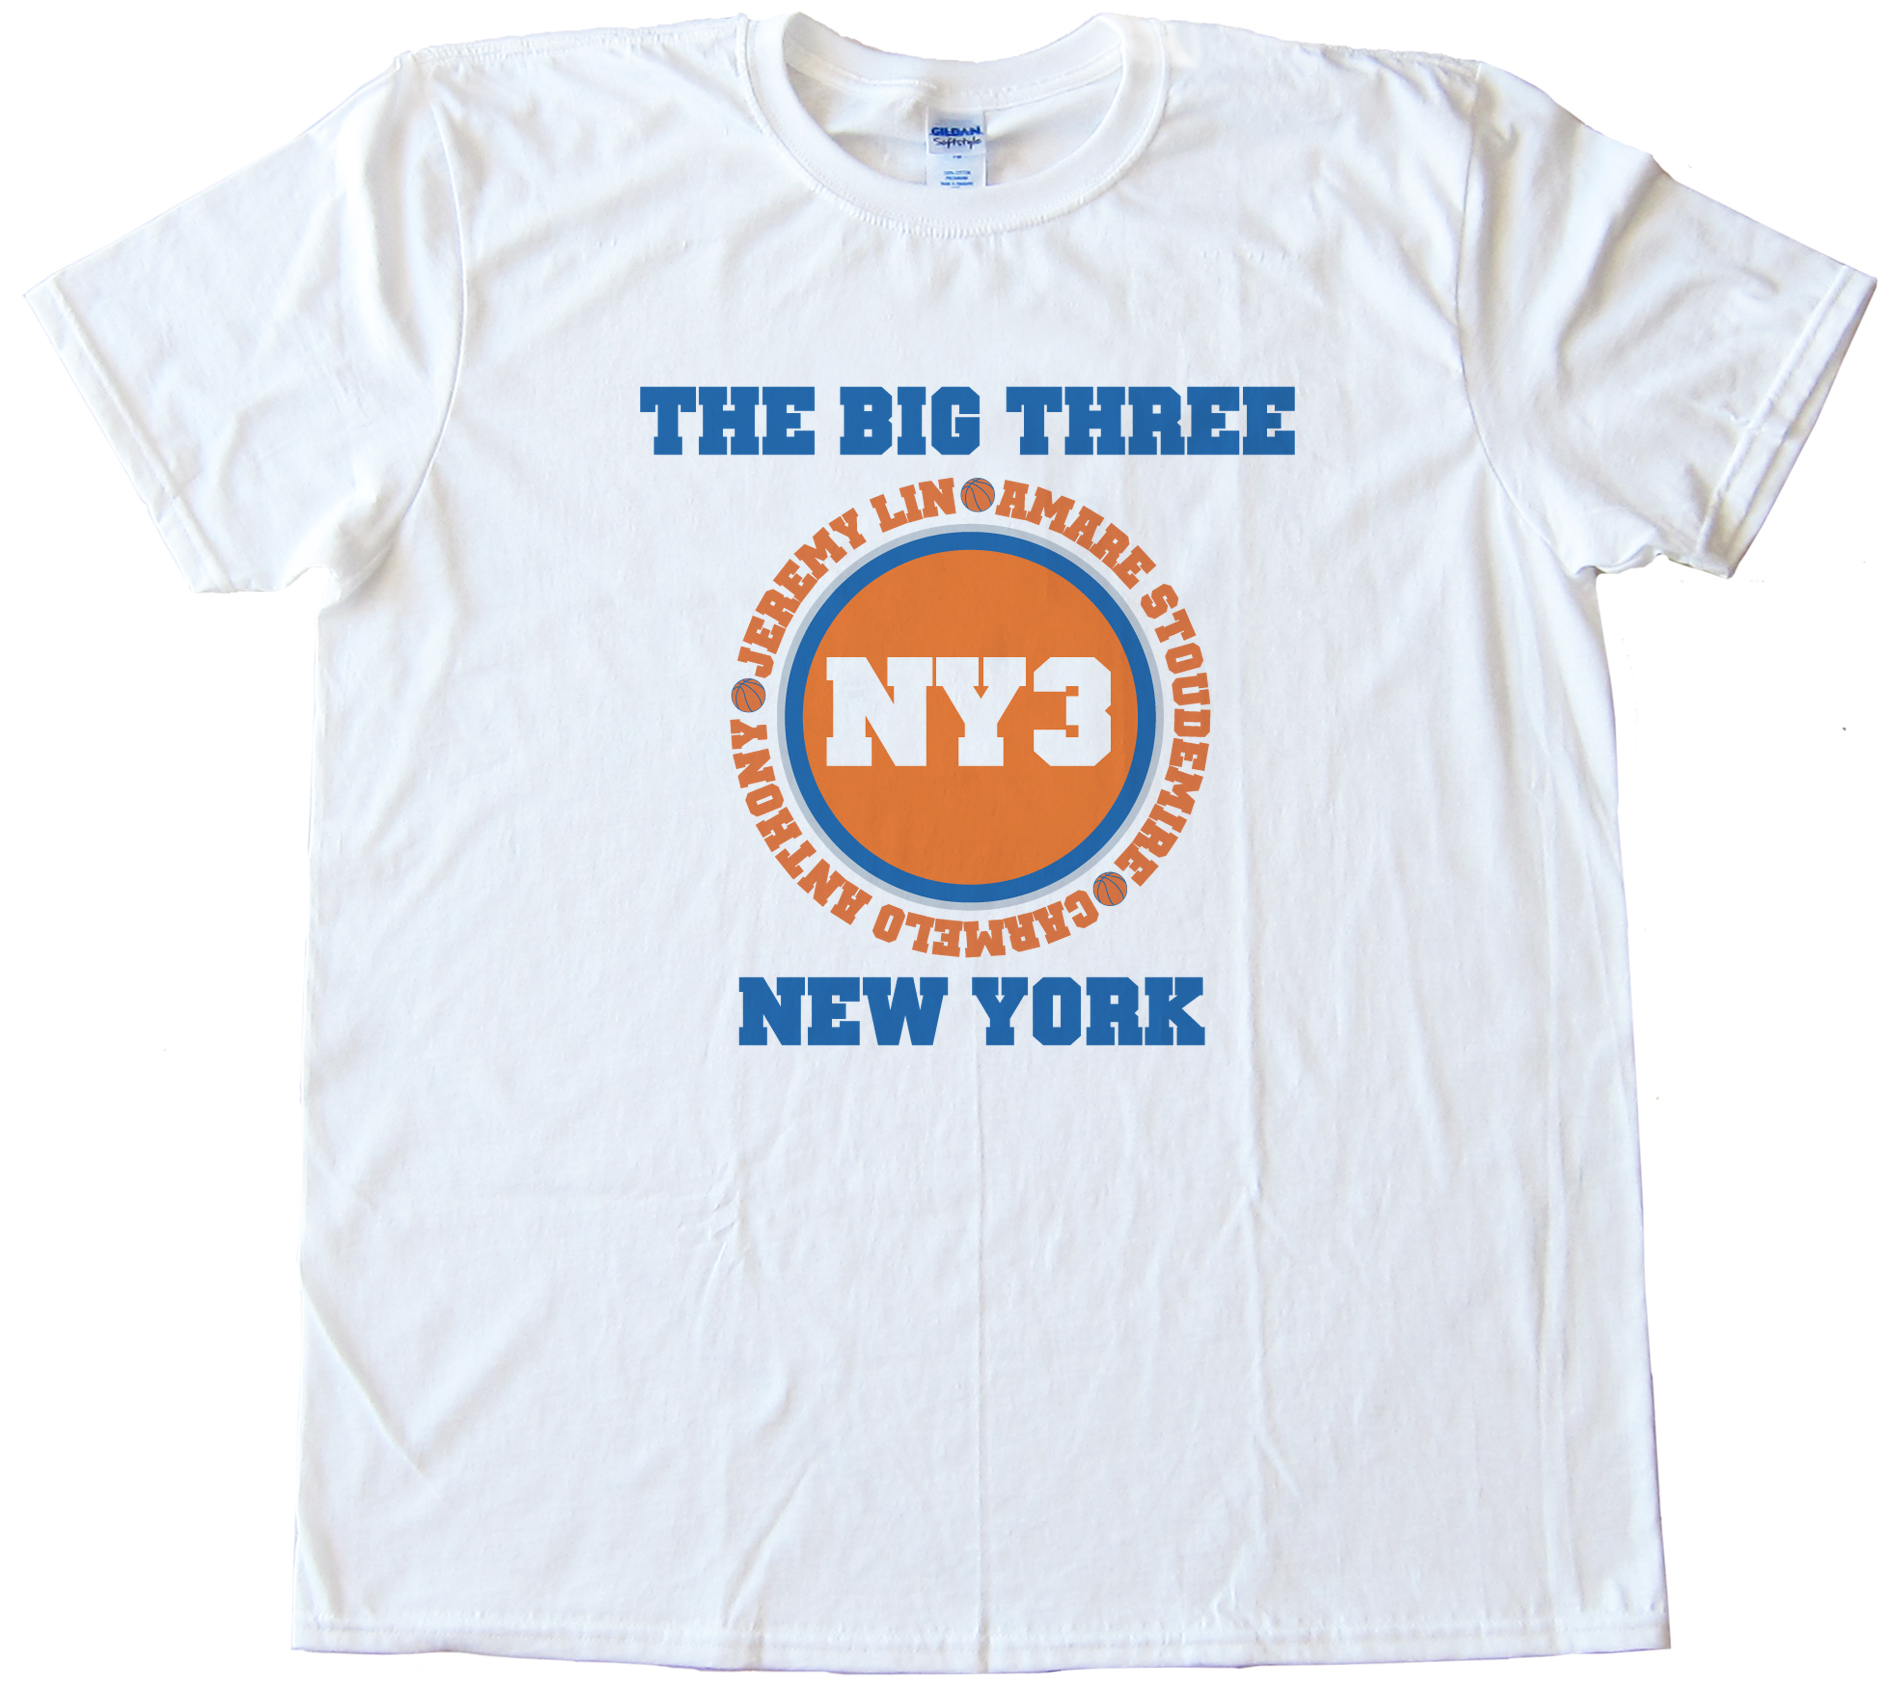 The Big Three New York Knicks Tee Shirt